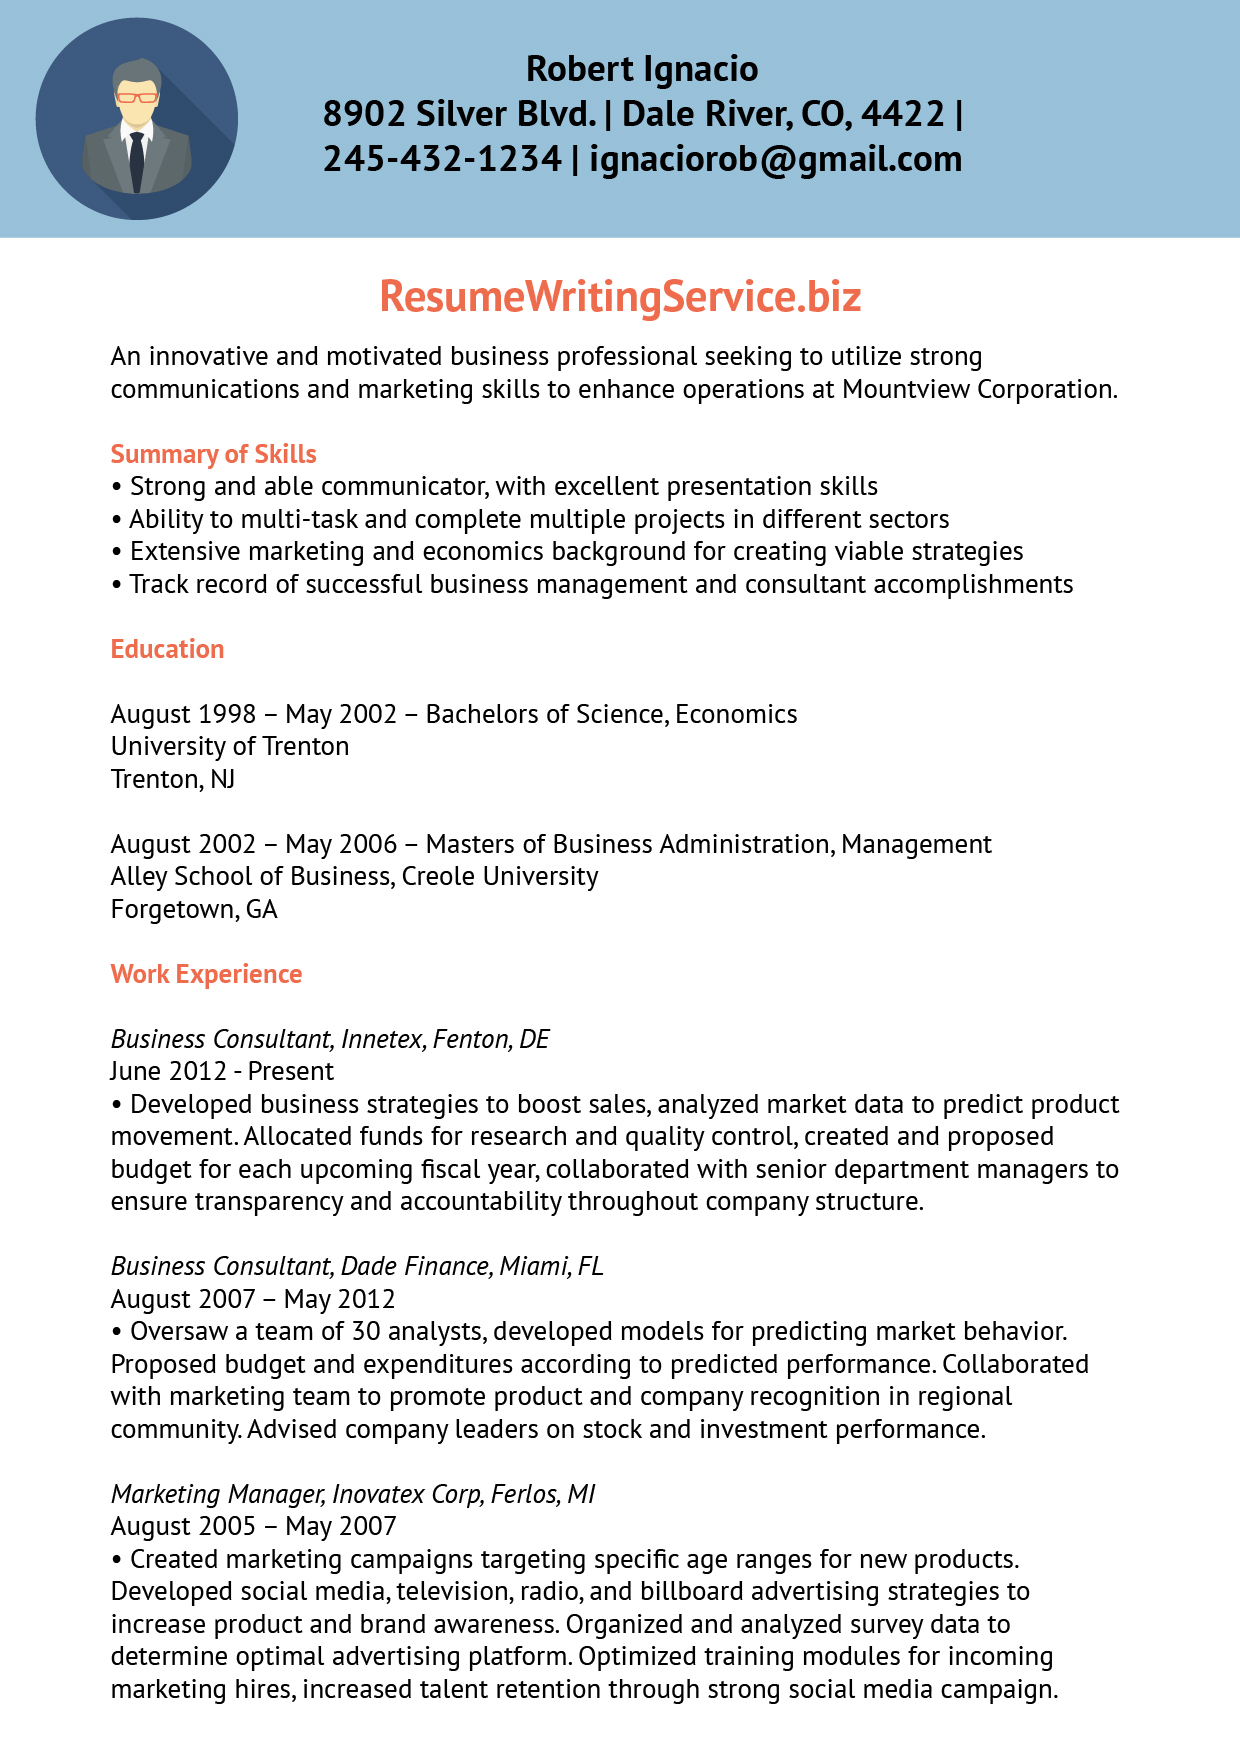 Consultant Resume Sample  business consultant resume sample     Travel Consultant Resume Example Corporate Travel Consultant Resume Sample management consultant resume example